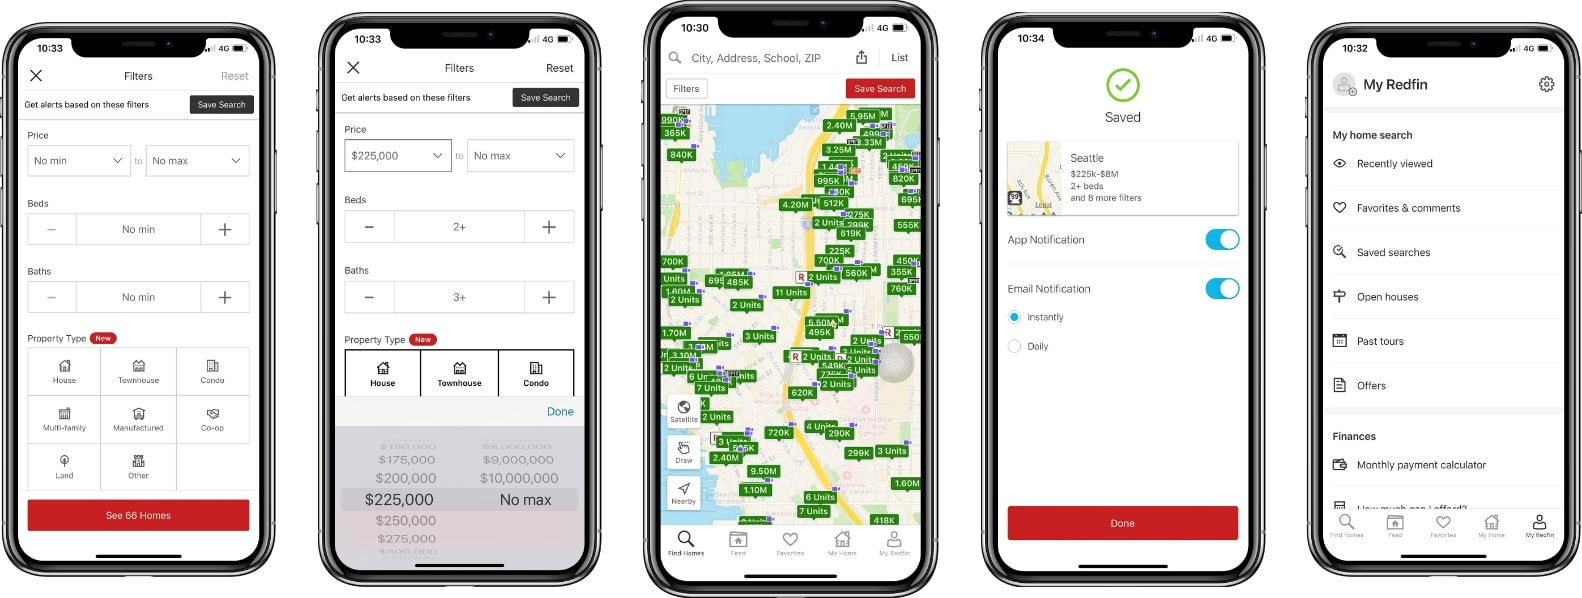 screenshot of the redfin application